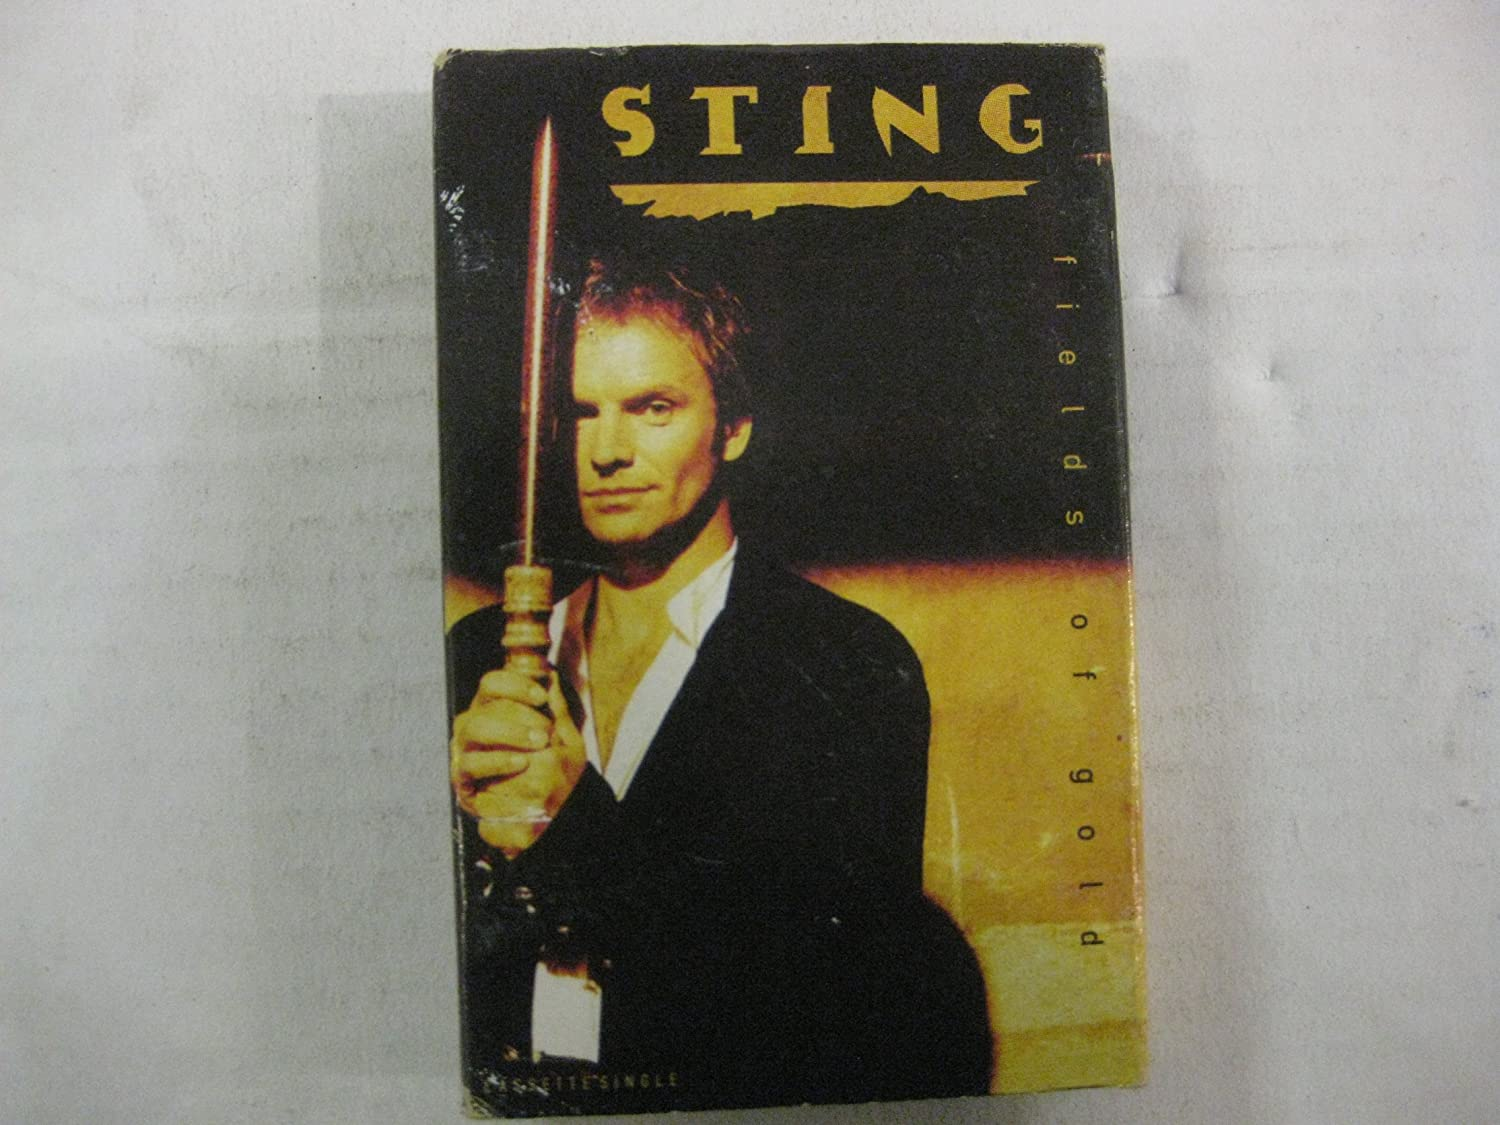 STING - Sting- Fields of Gold - Lp Version / Fields of Gold - Home Video  Version {Cassette Single} - Amazon.com Music